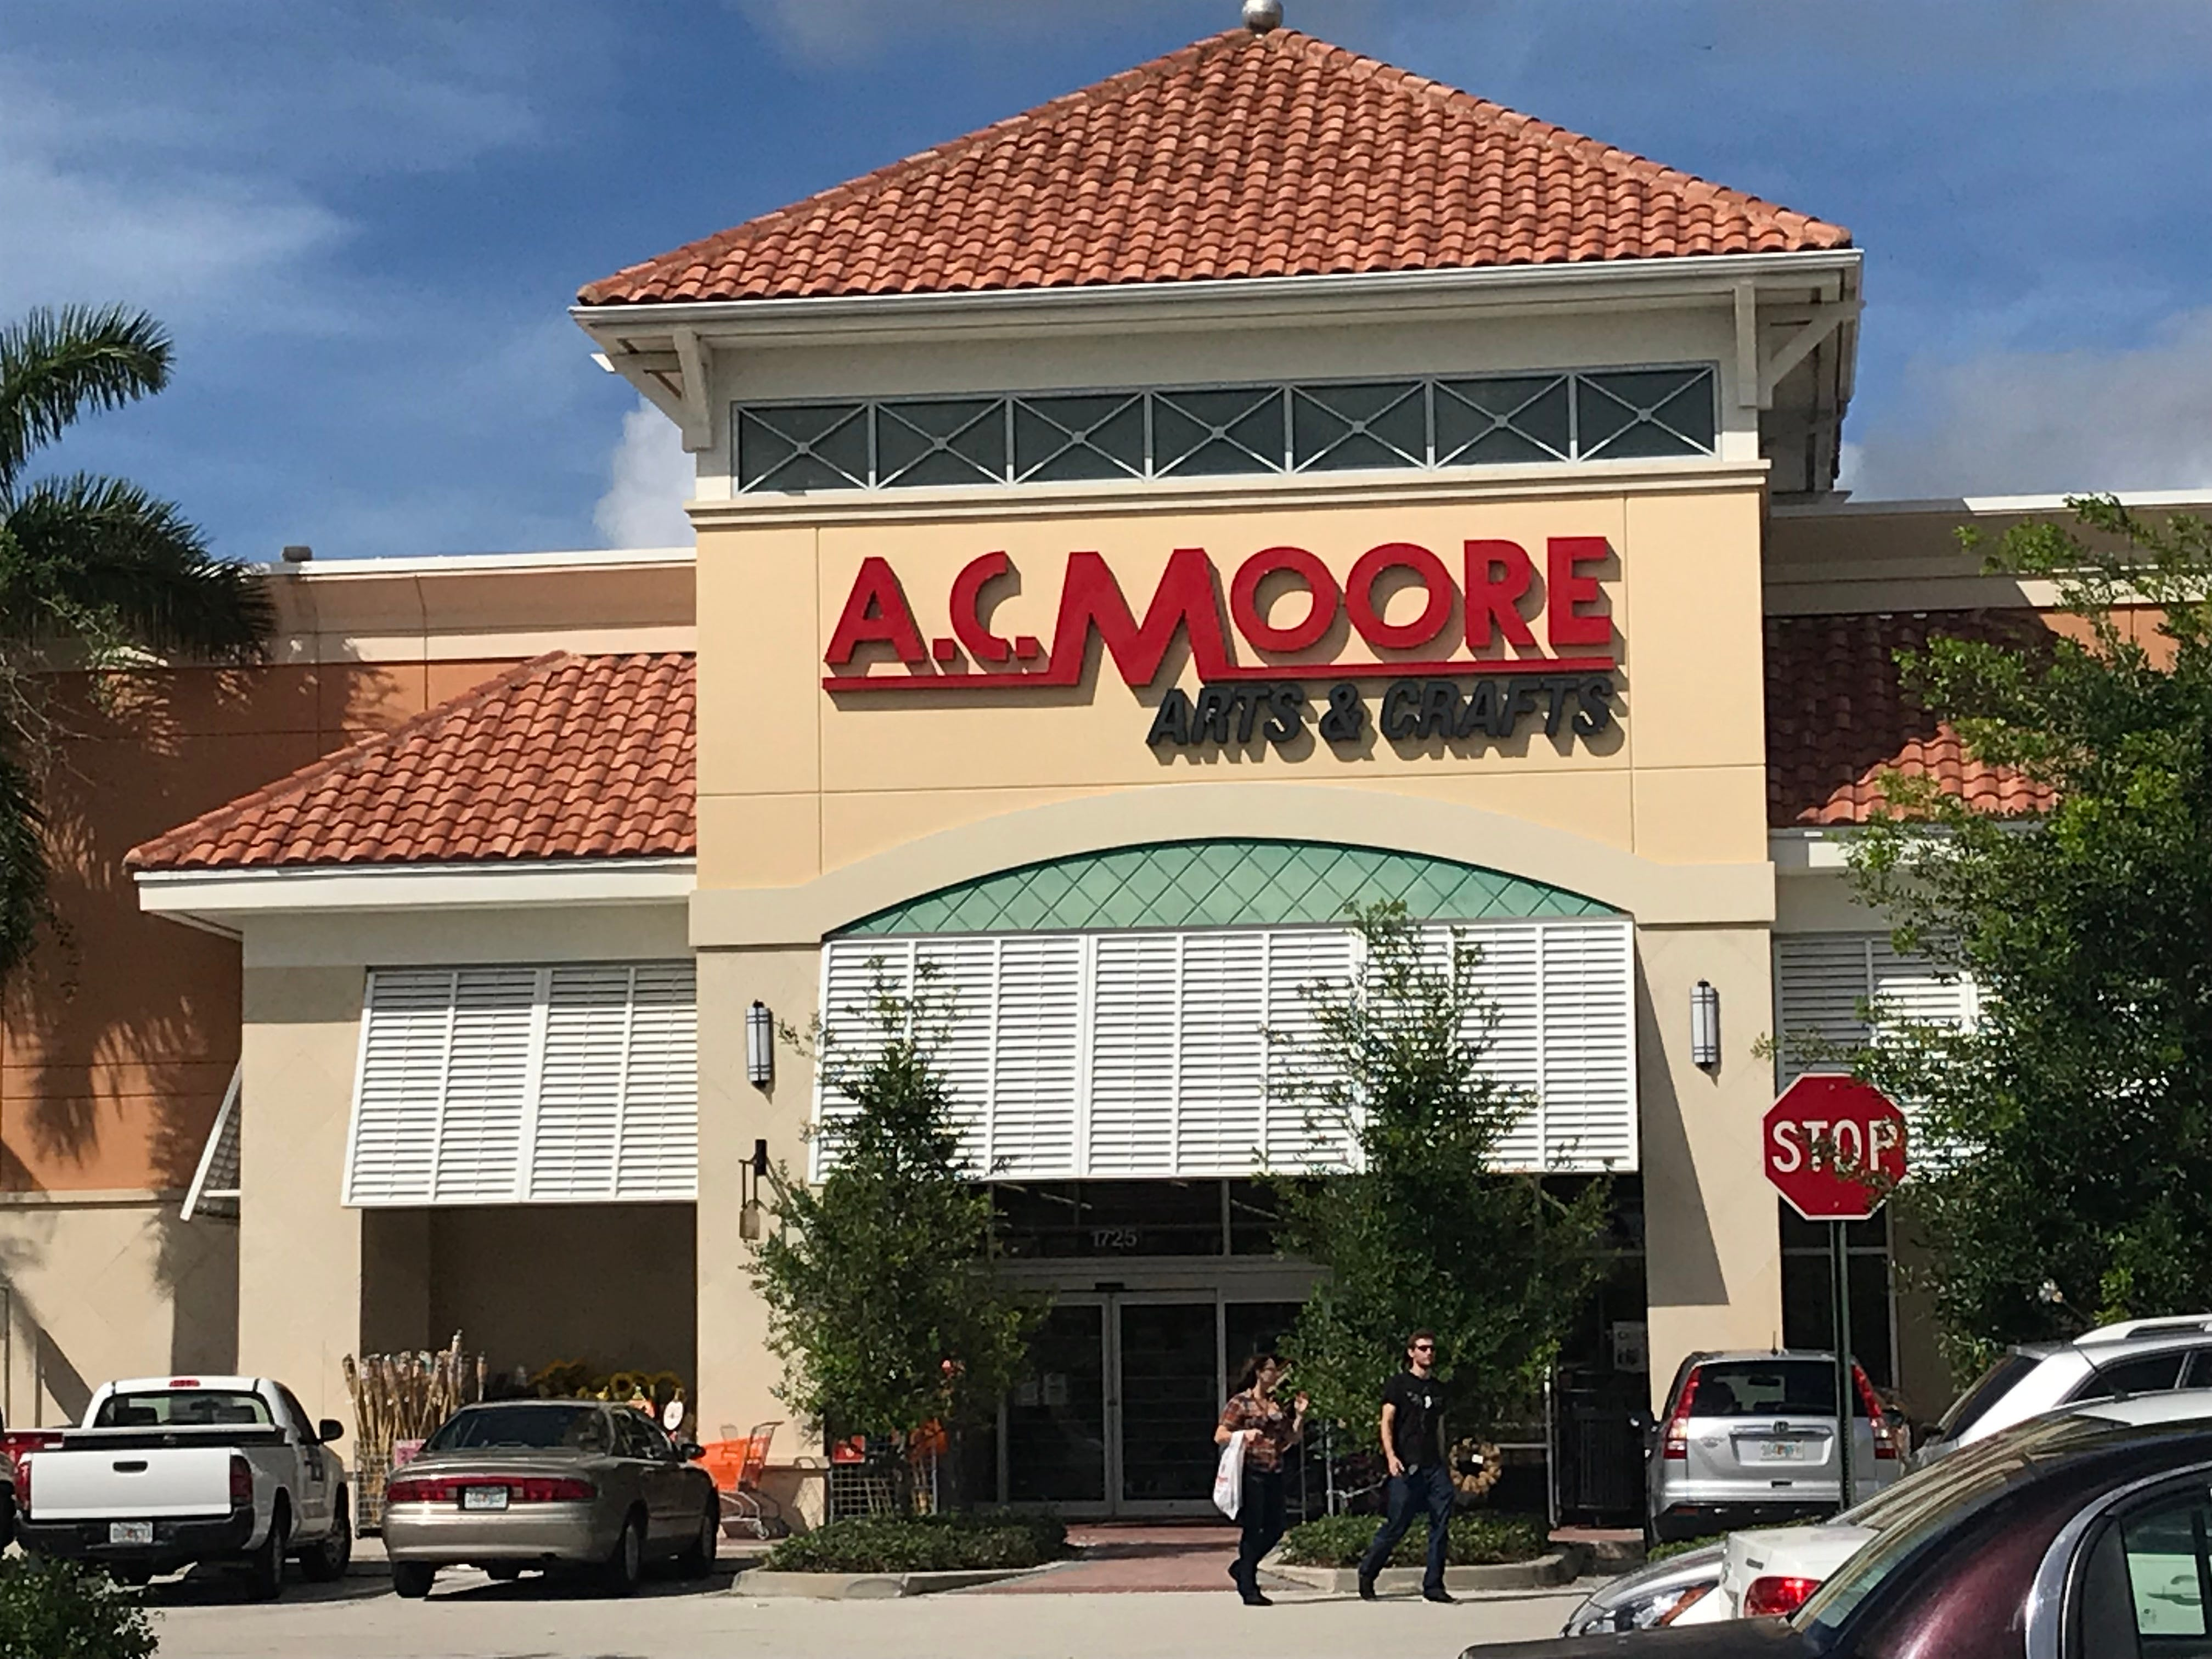 A.C. Moore will be closed on Thanksgiving 2018.